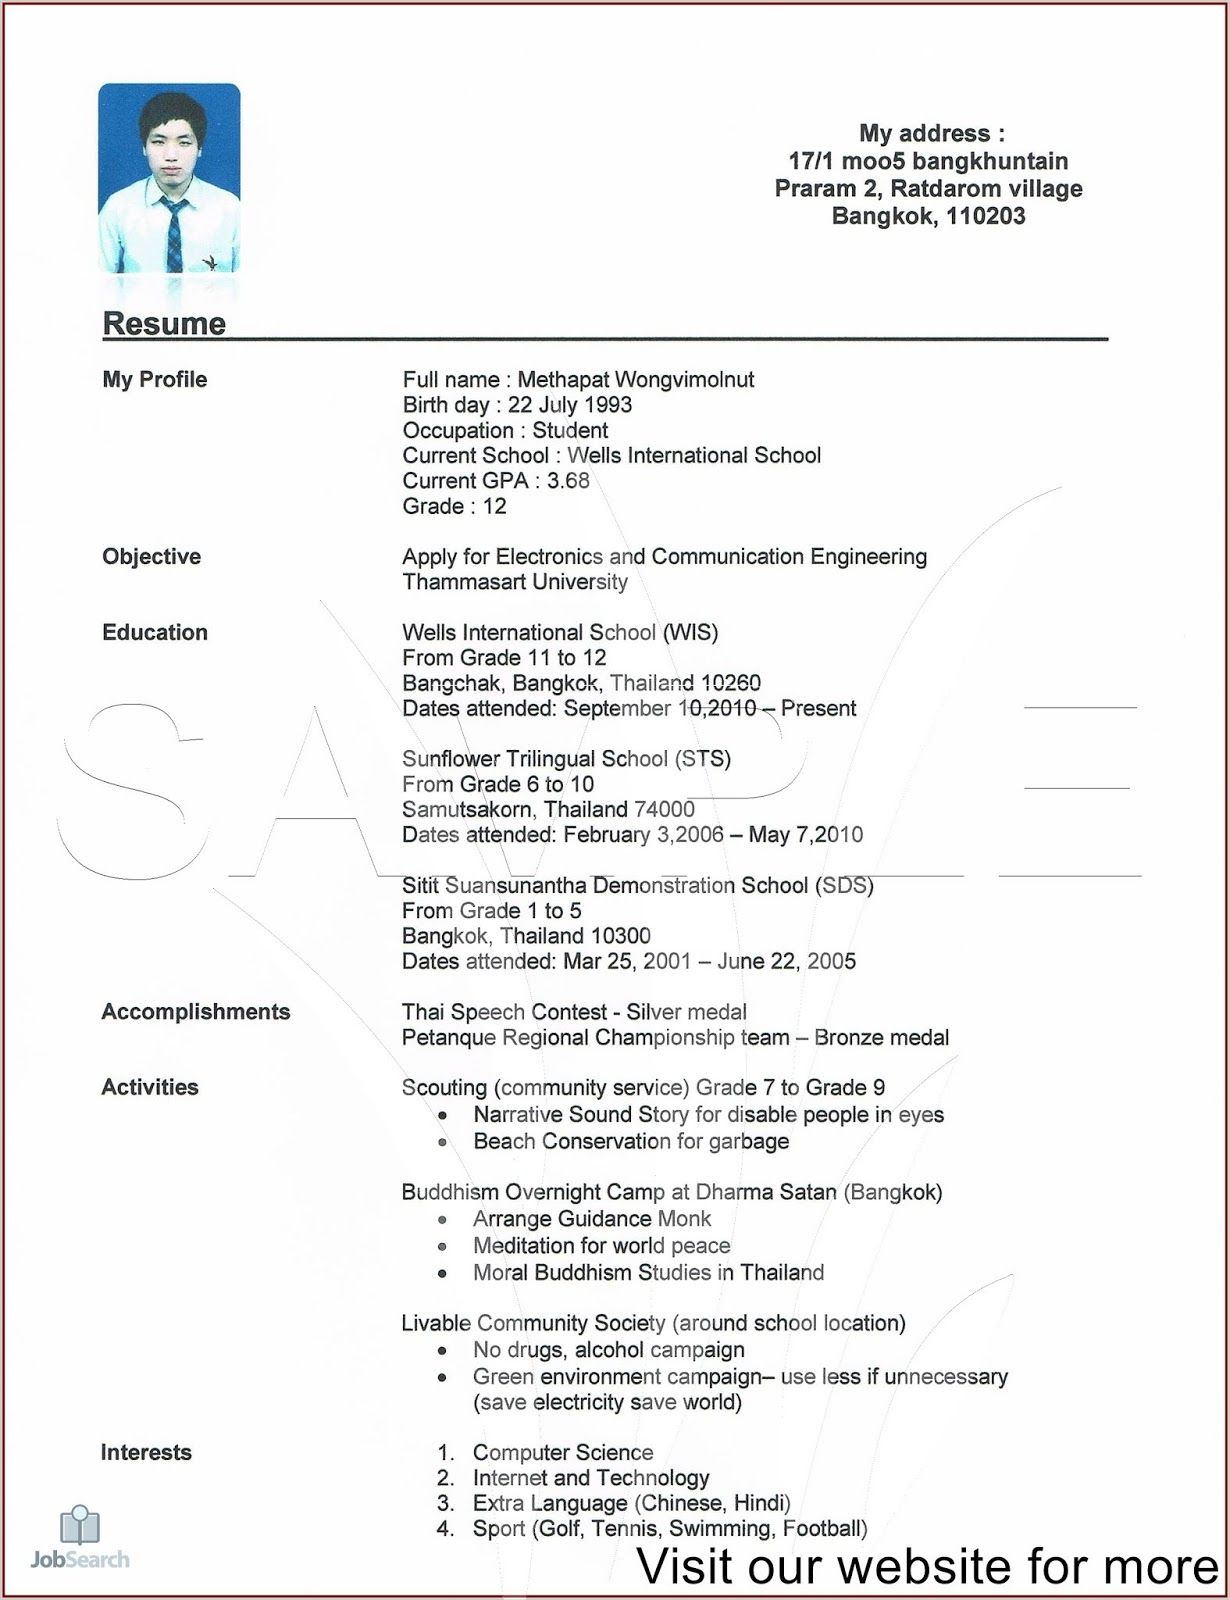 resume template professional cv design free student high school college for students Resume Online Resume For Students